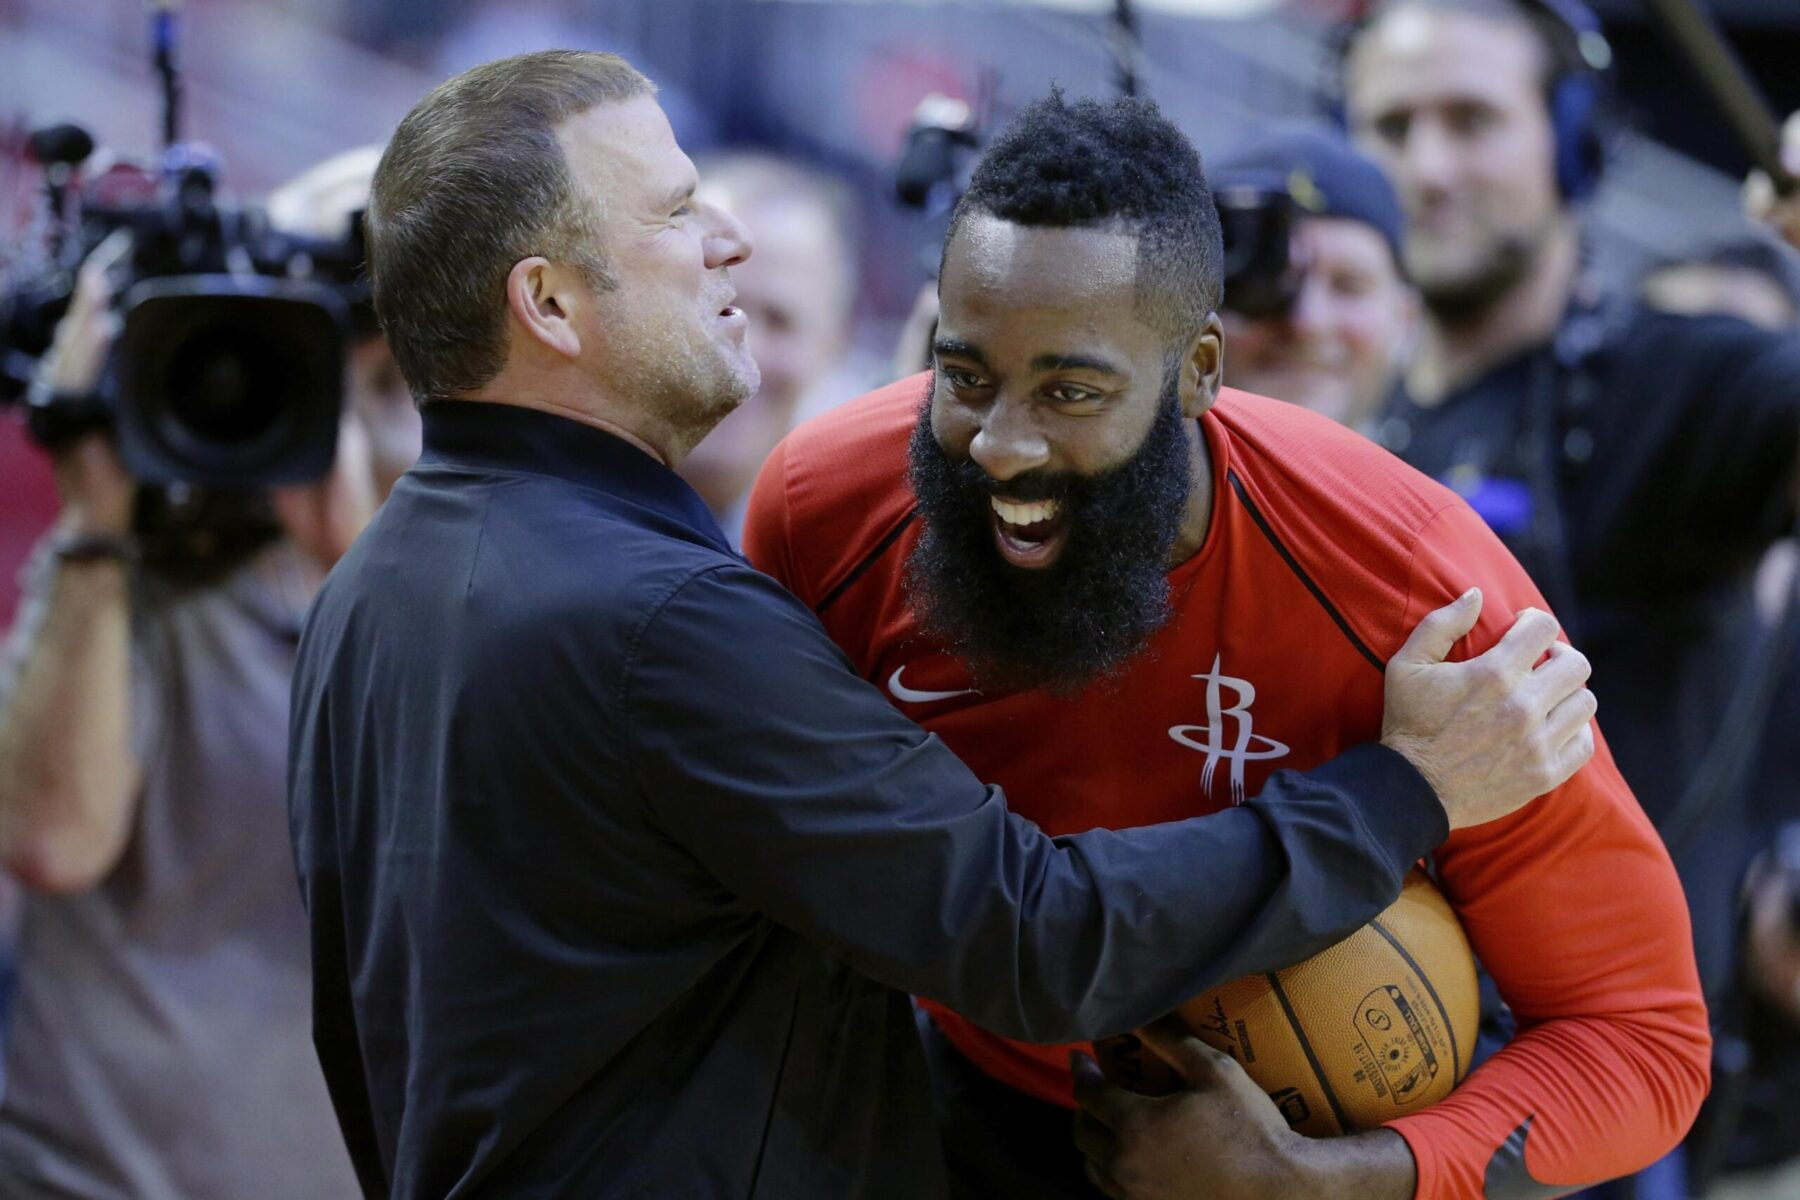 Tilman Fertitta and James Harden